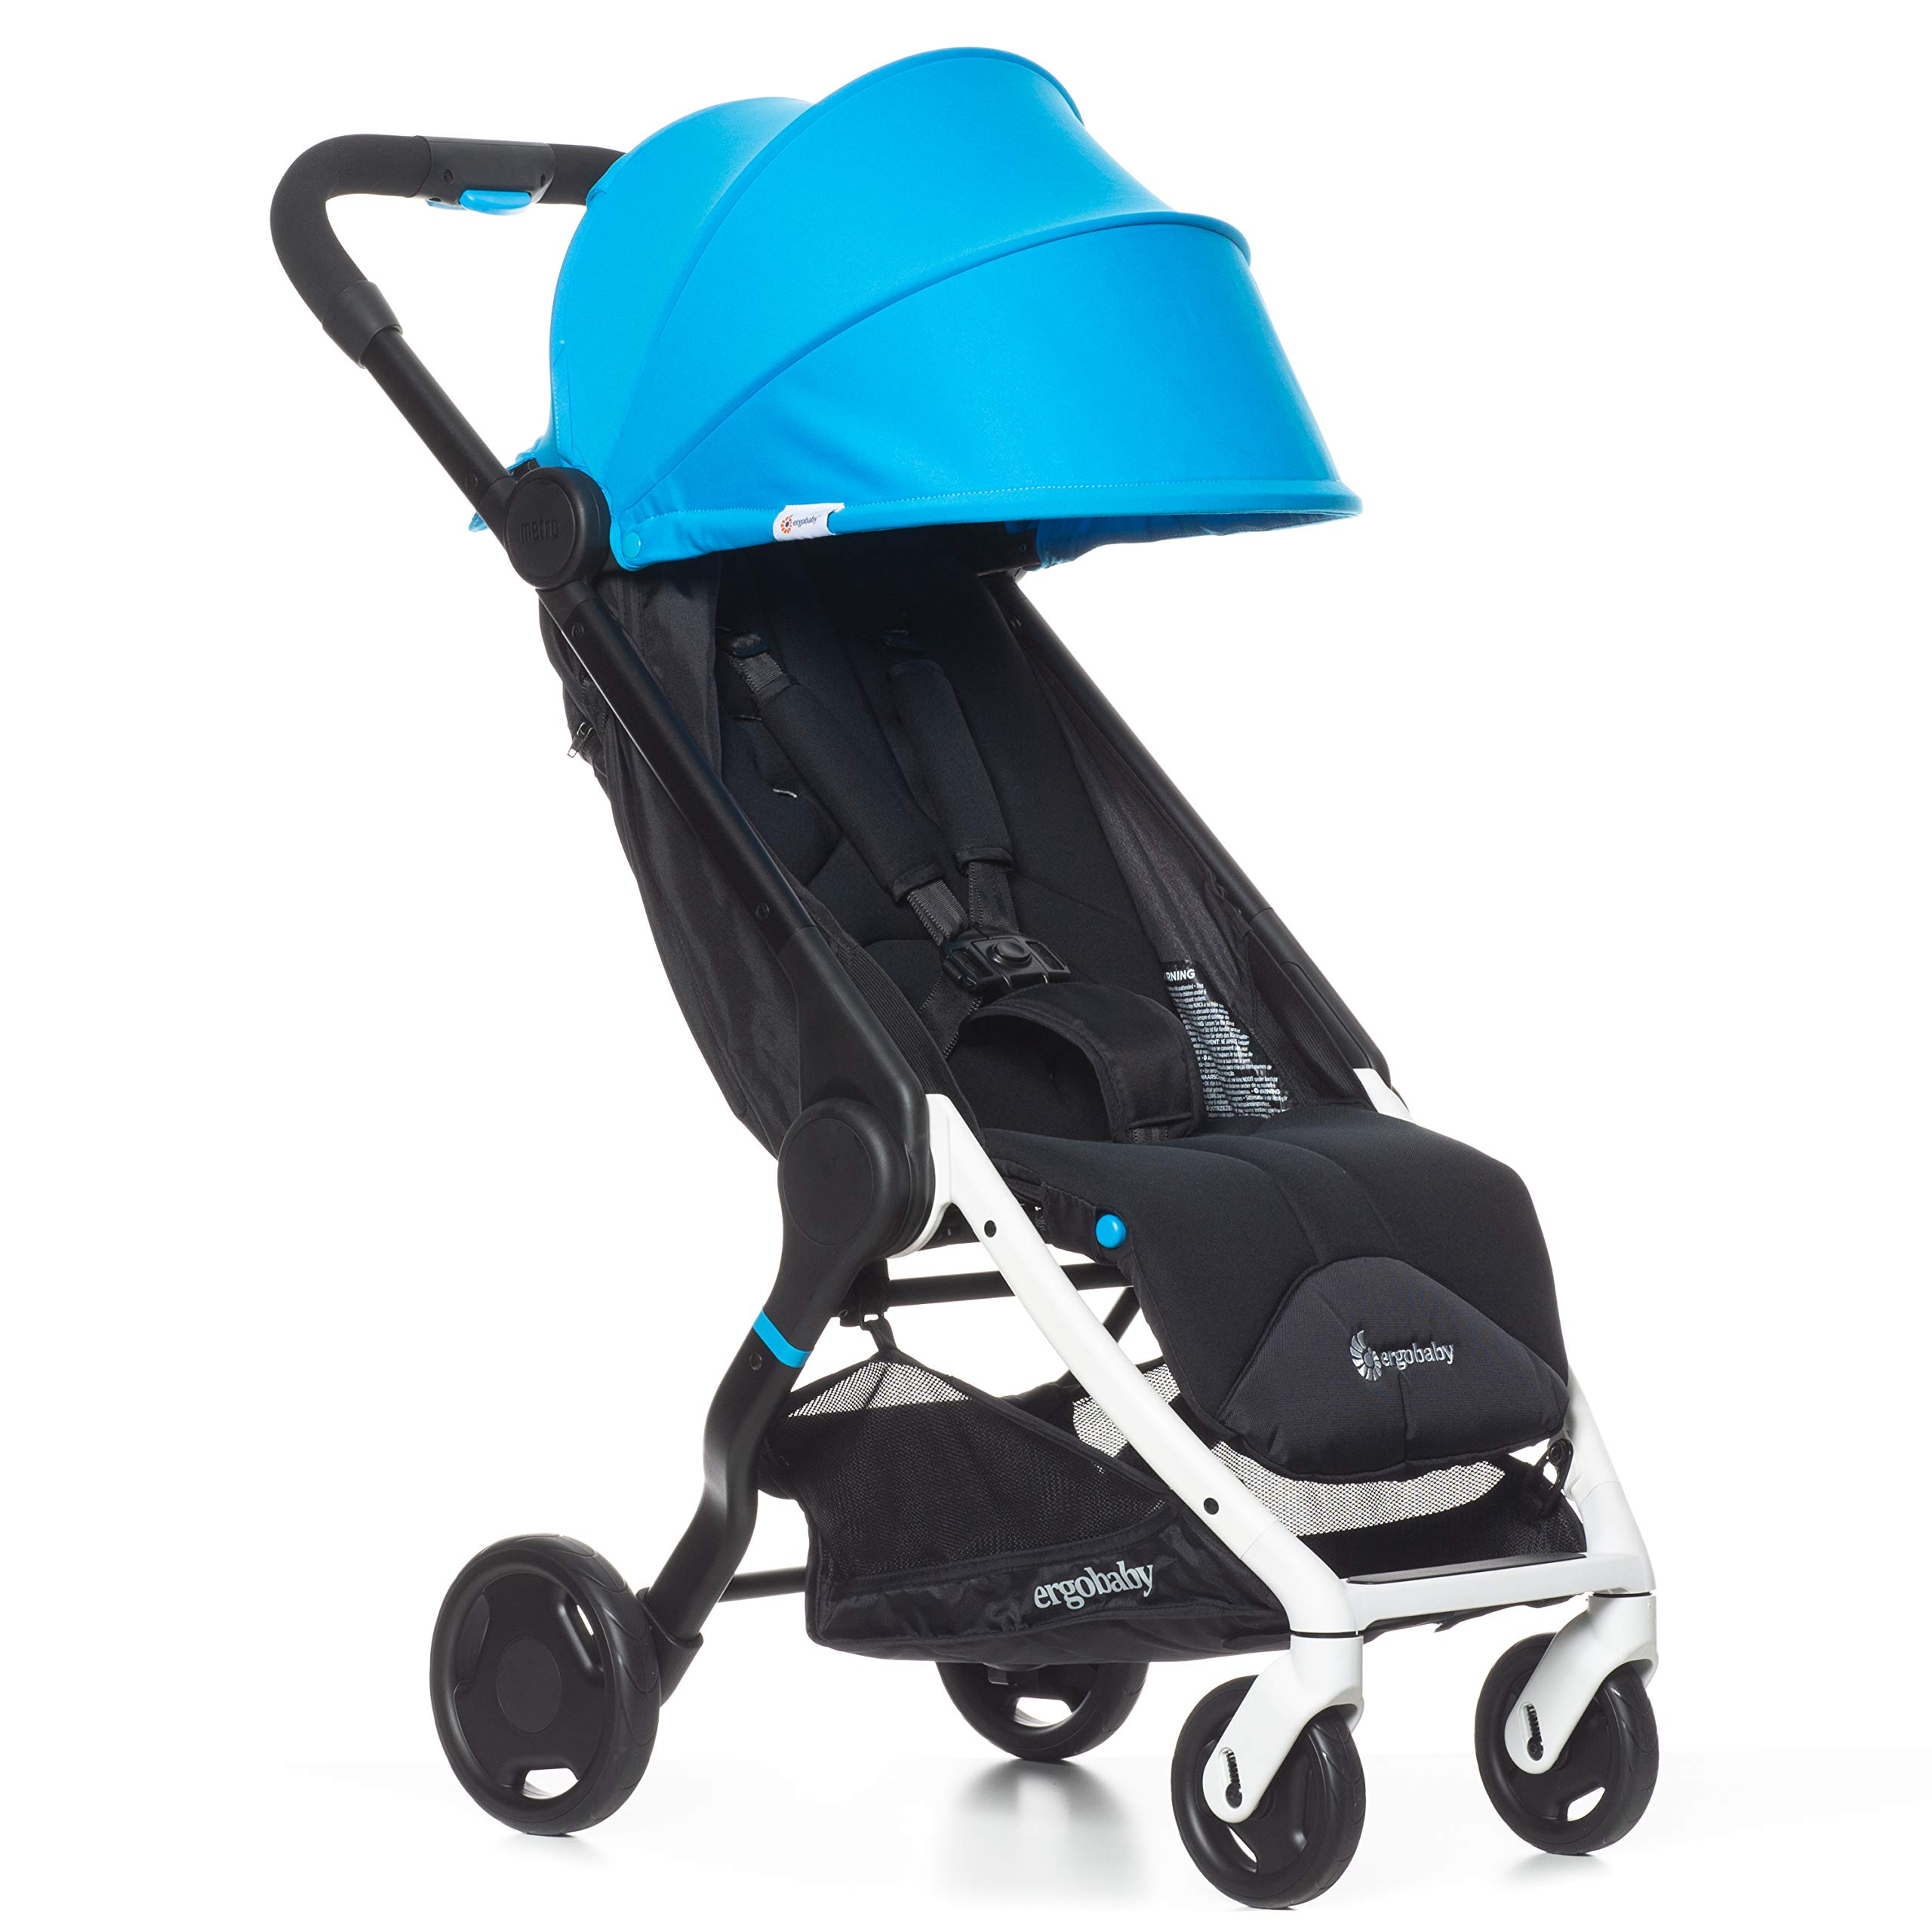 Ergobaby Metro Lightweight Baby Stroller, Compact Stroller with Easy One-Hand Fold, Blue